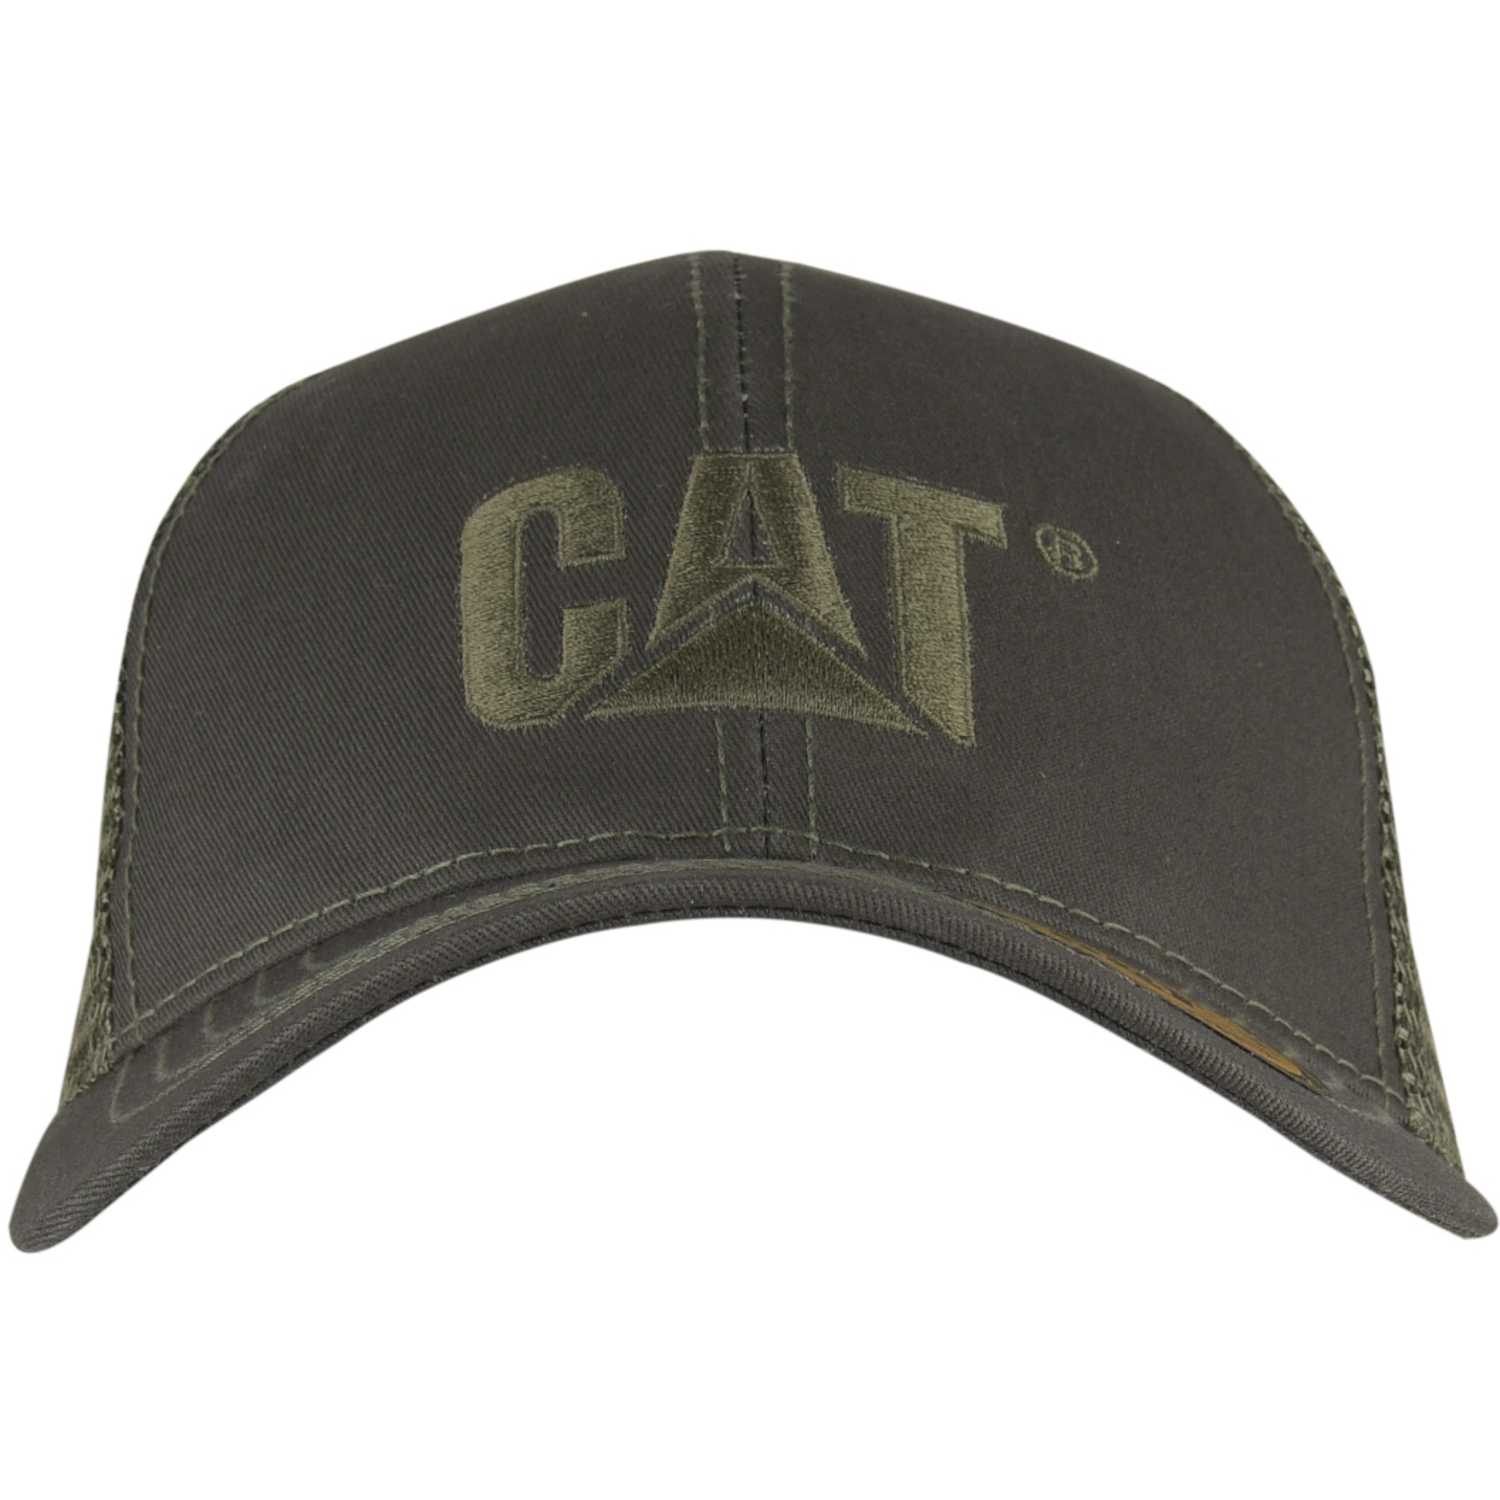 CAT raised logo cap Gris Gorros de Baseball